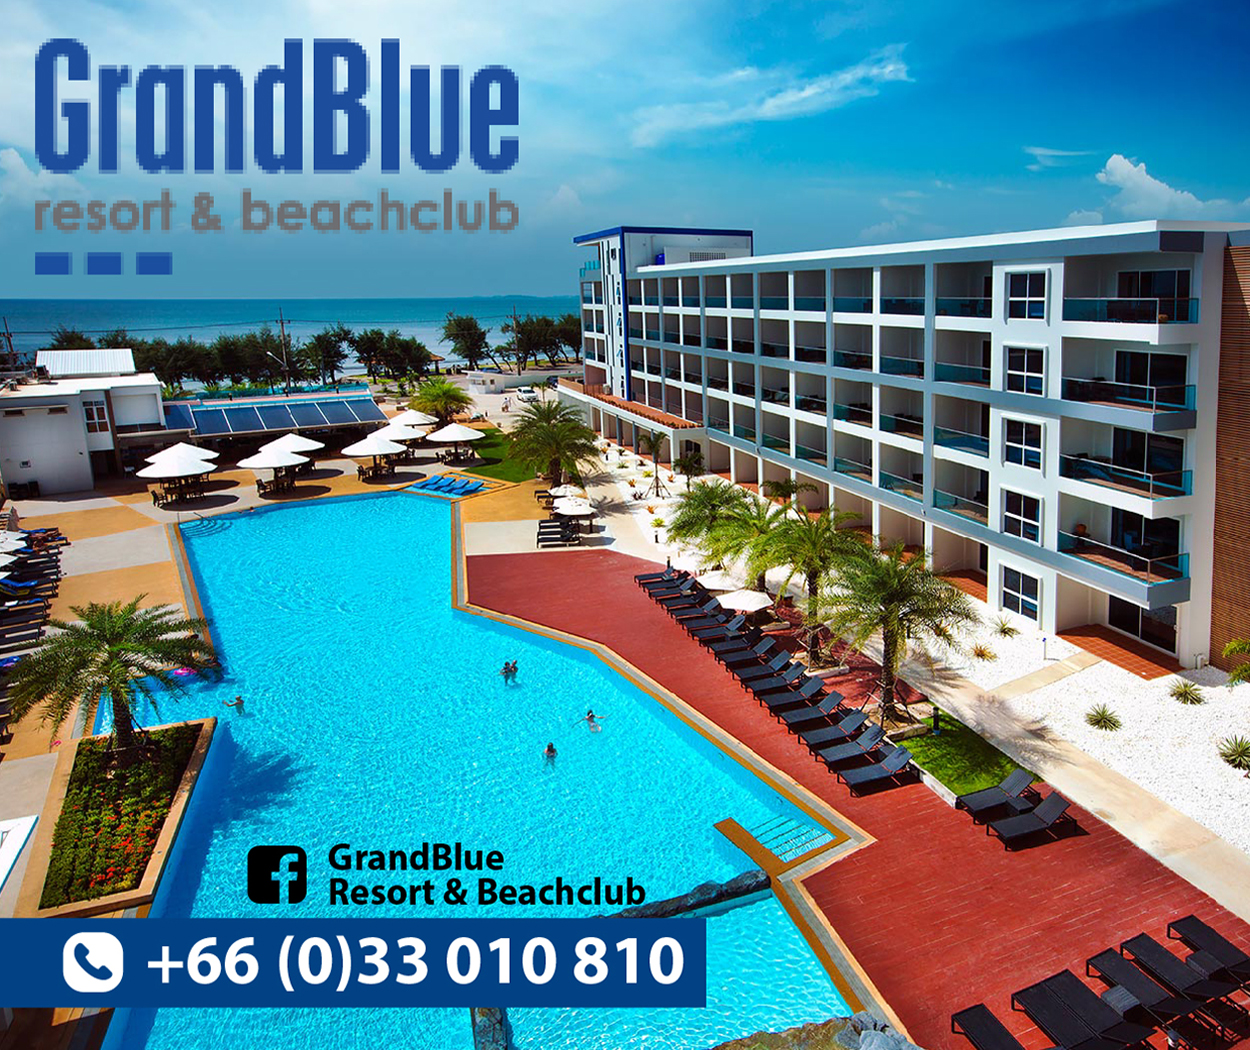 GrandBlue Resort and Beachclub